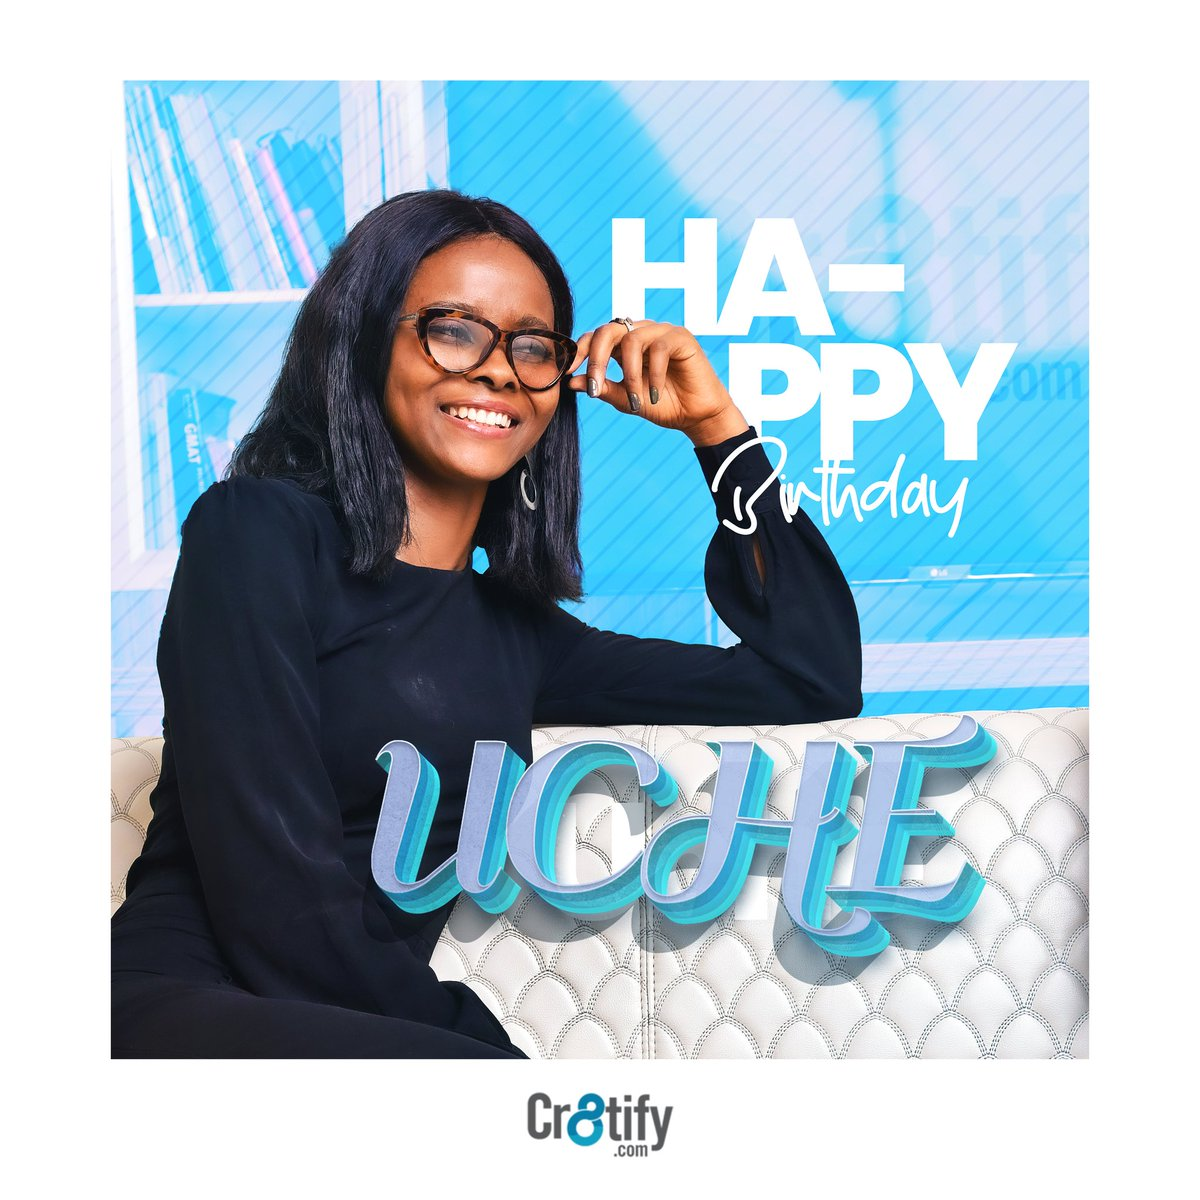 Happy  birthday to our awesome team mate @ucheagina_.  May this year bring you joy.  #cr8tify  #happybirthday #teamcelebrations #tuesdayvibe #tuesdaymotivations